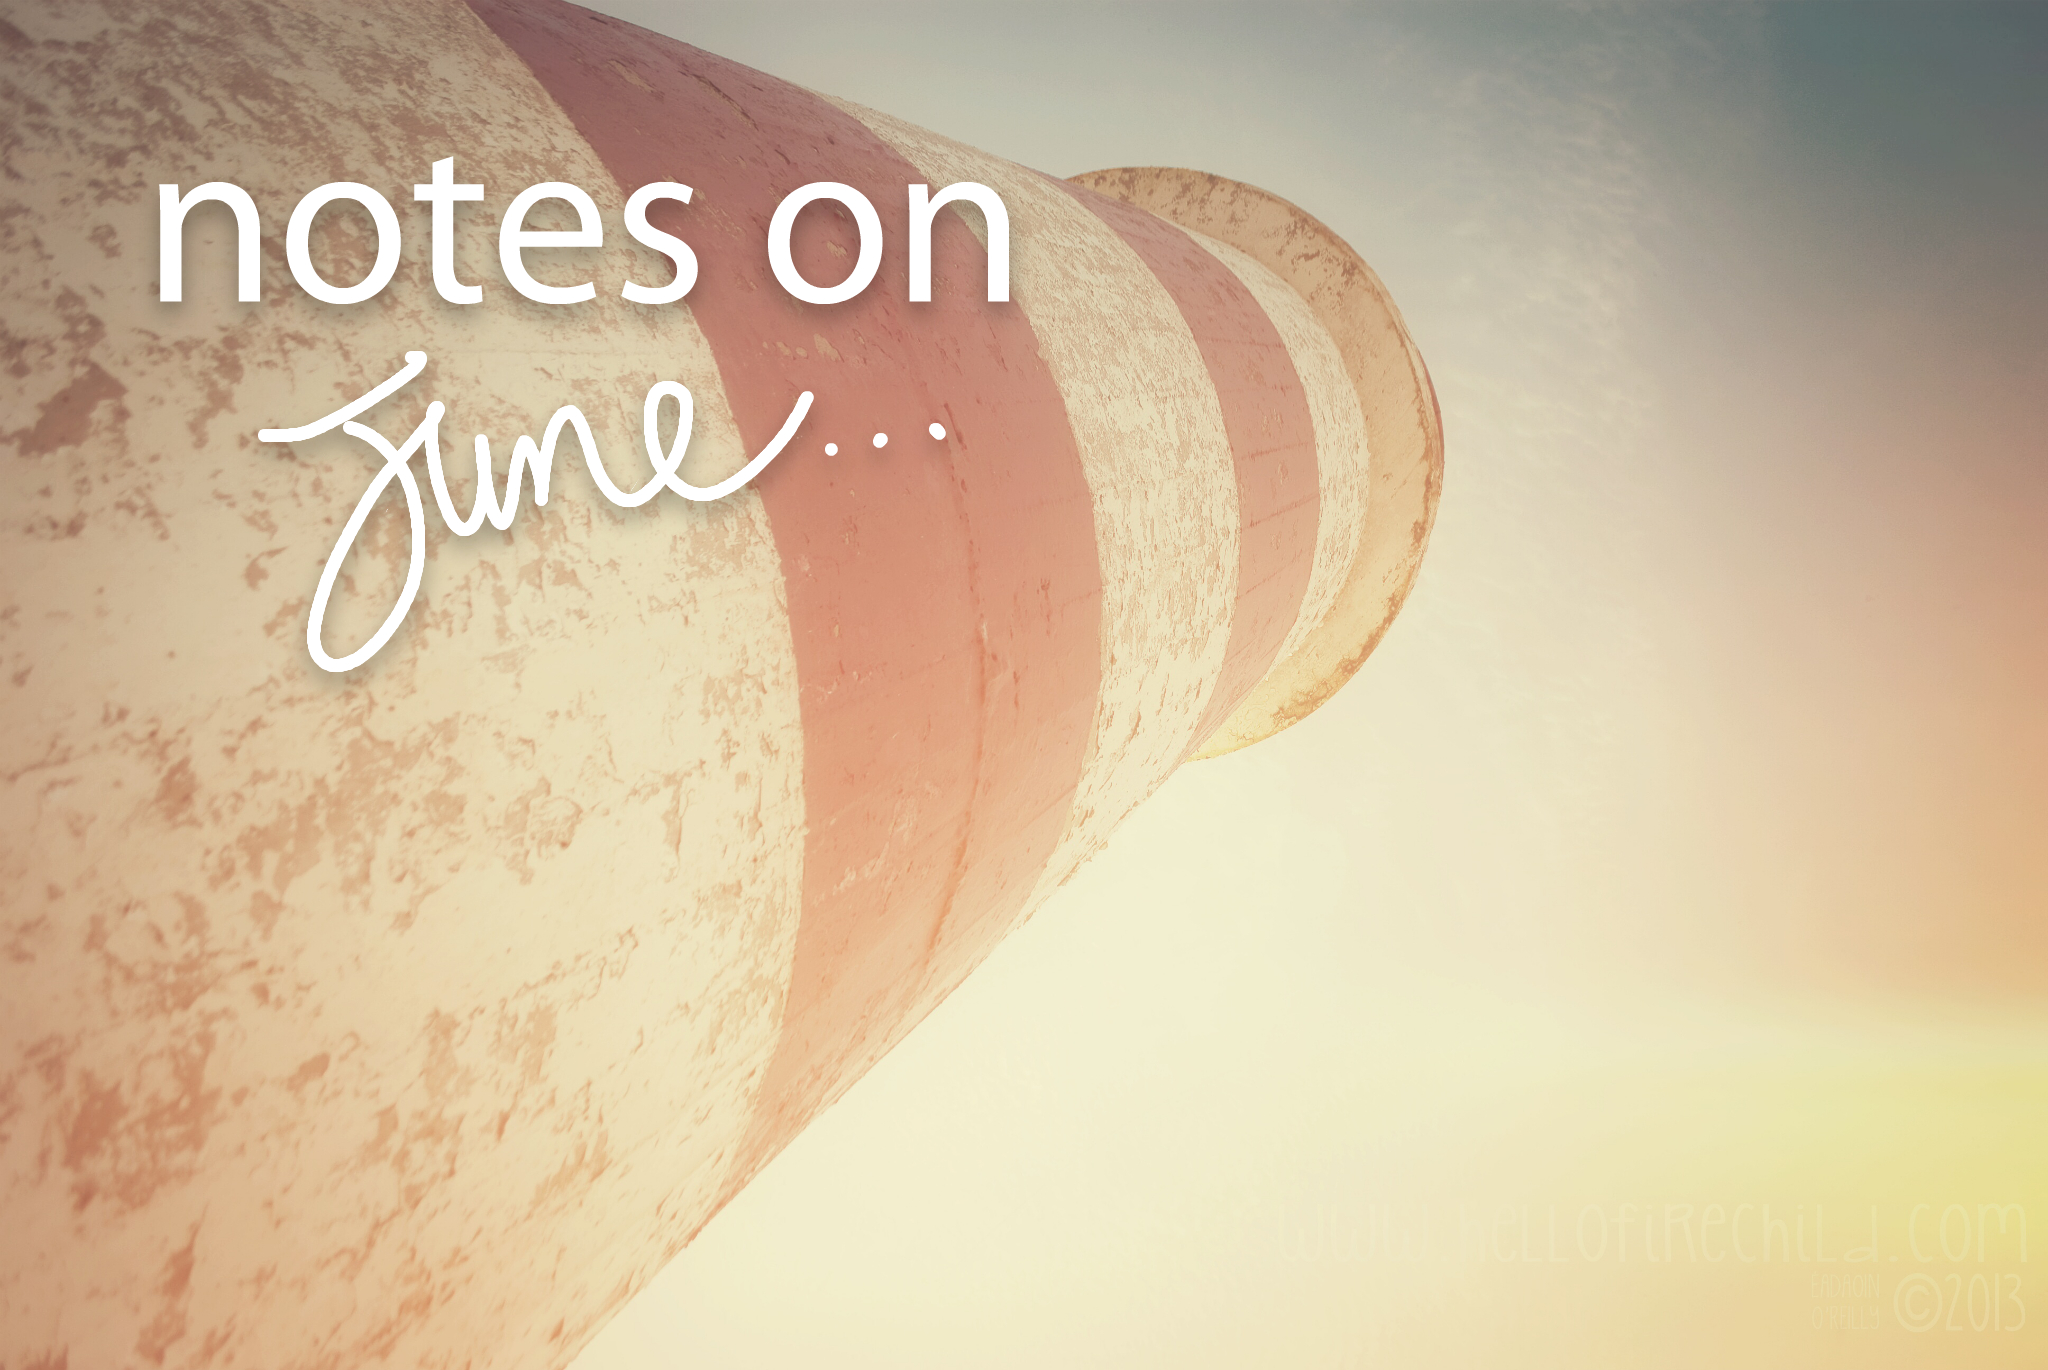 Notes on June